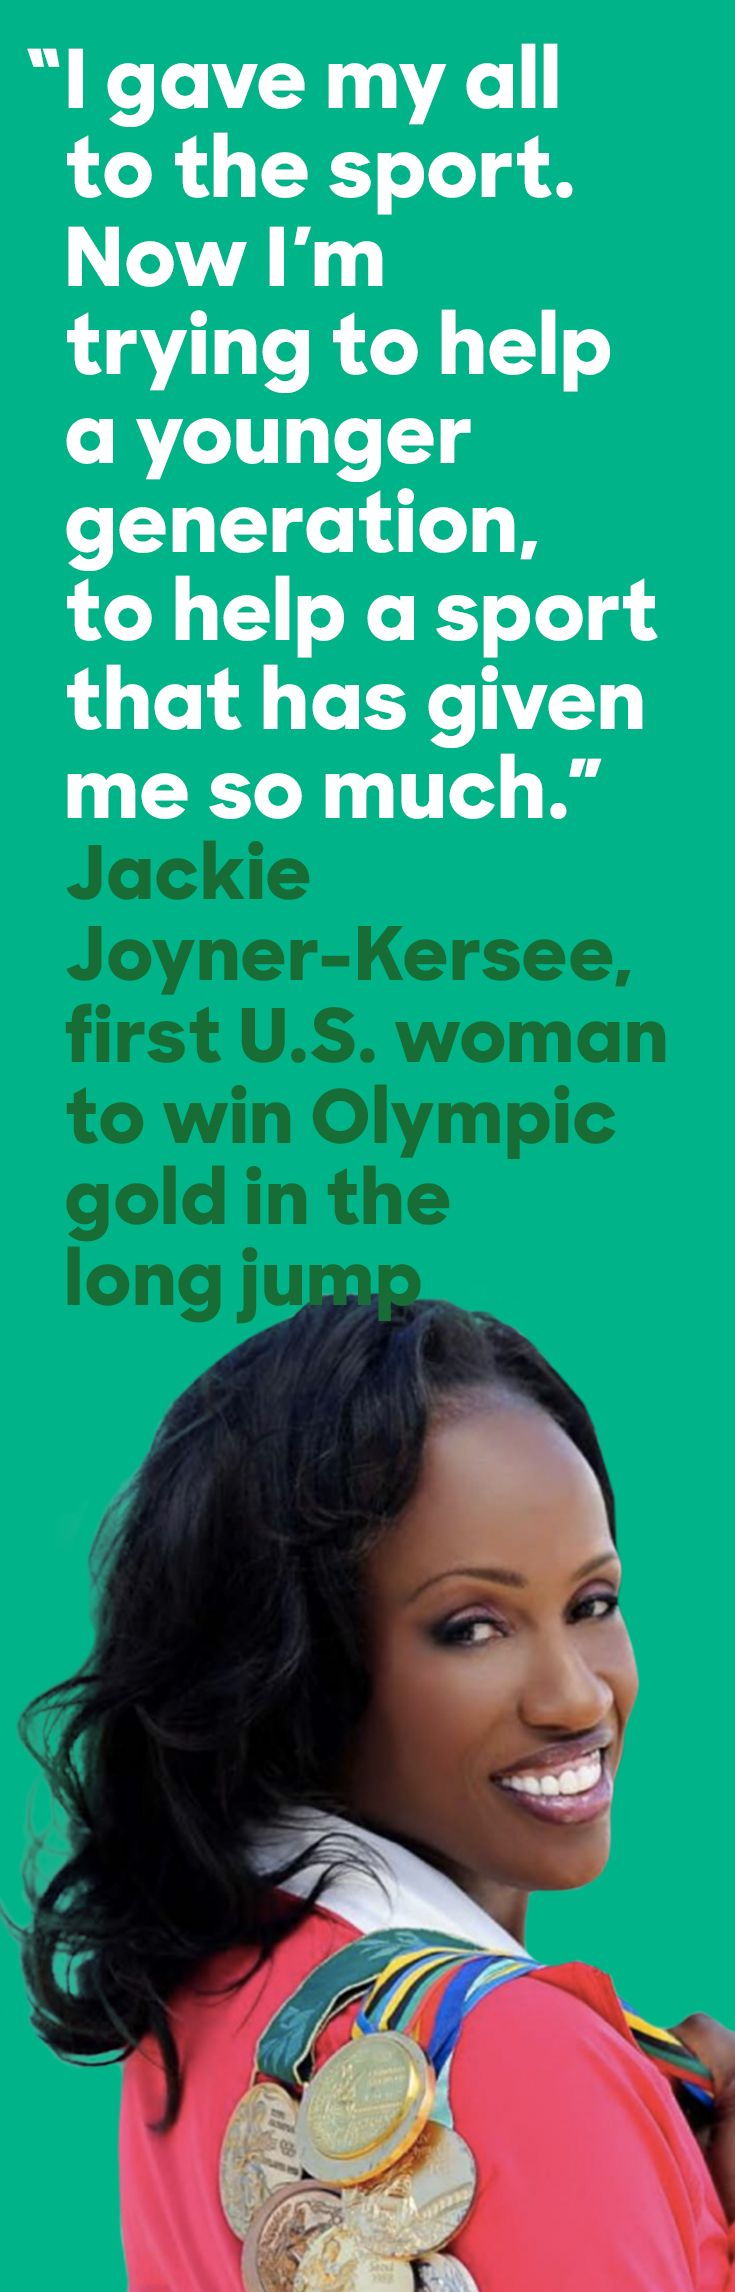 At the 1988 Olympic games, Jackie Joyner-Kersee became the first U.S. woman to win gold in the long jump. That year Jackie also took gold in the heptathlon, setting the still-standing world record of 7,291 points. Over her career, Jackie won six Olympic medals—making her the most decorated woman in USA Track and Field history until Allyson Felix earned her seventh Olympic medal in Rio this week.